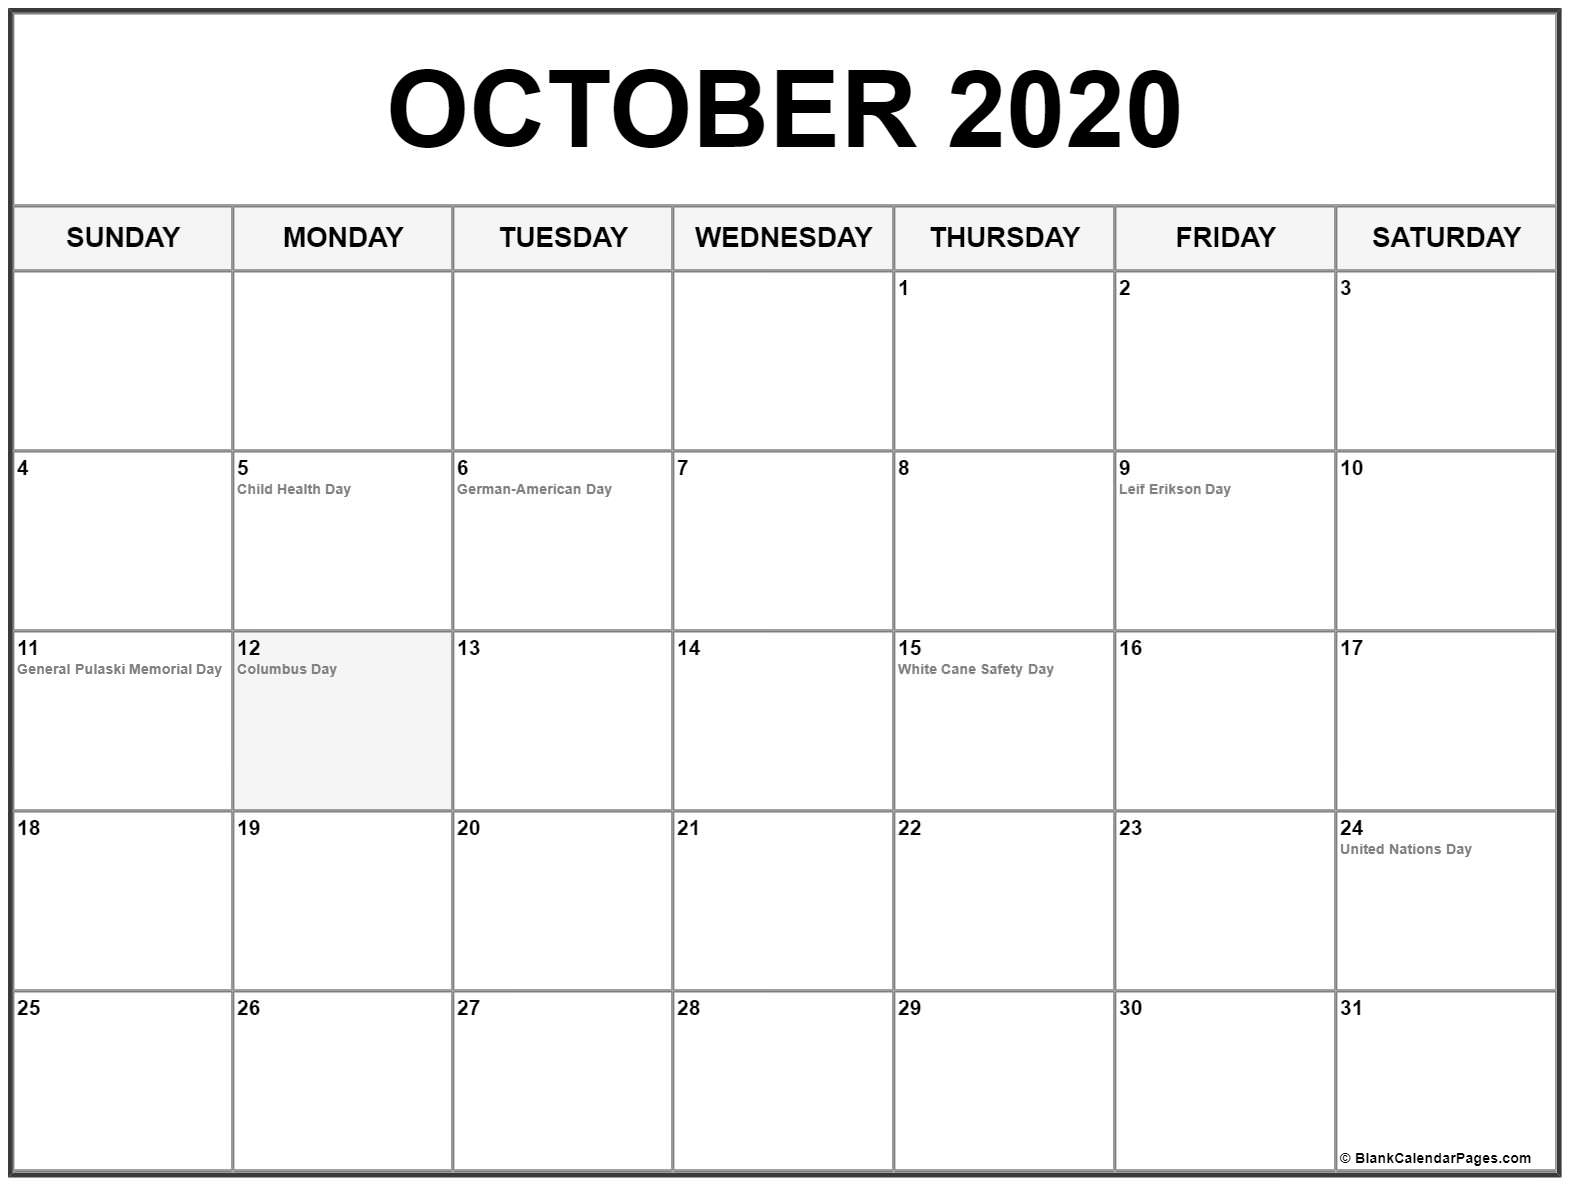 Collection Of October 2020 Calendars With Holidays Dashing 2020 Calendar With Holidays